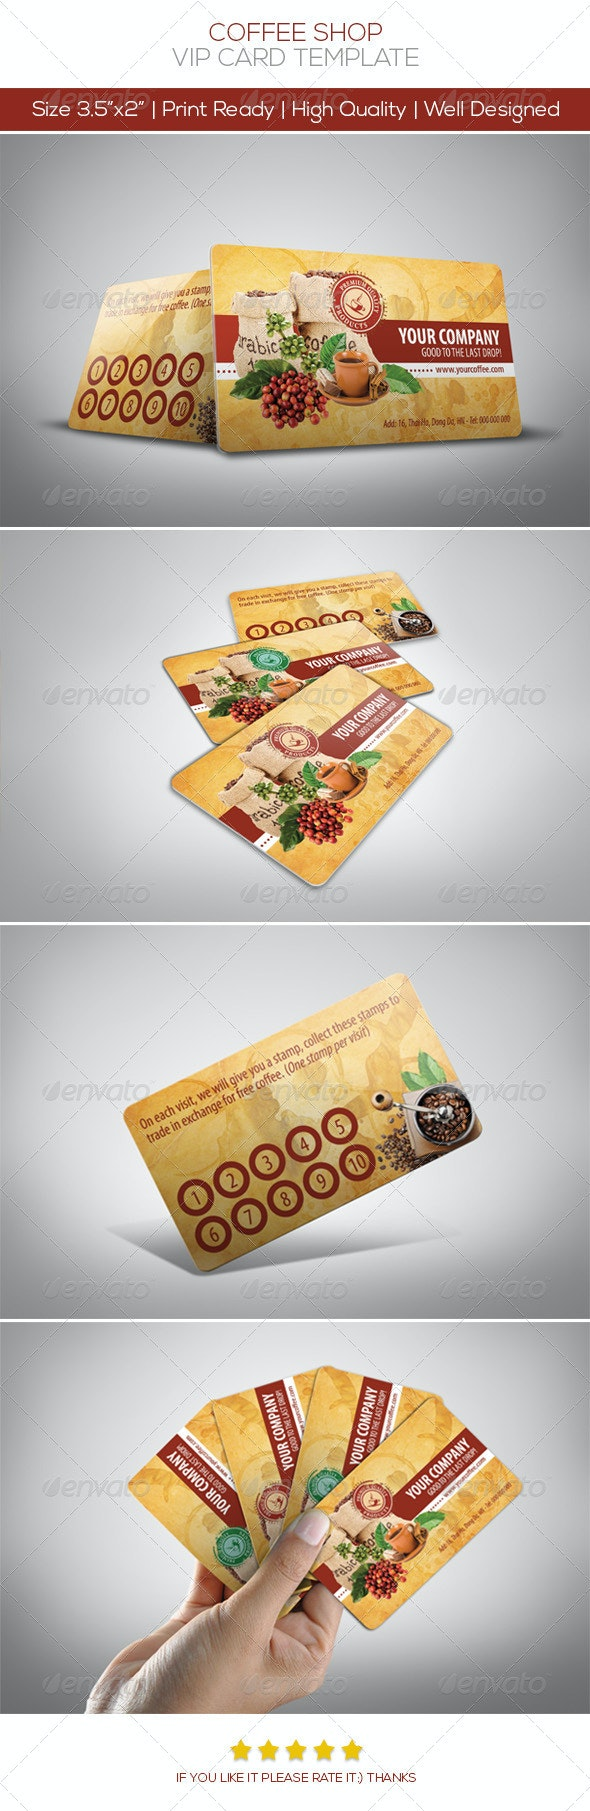 Coffee Card - Loyalty Cards Cards & Invites